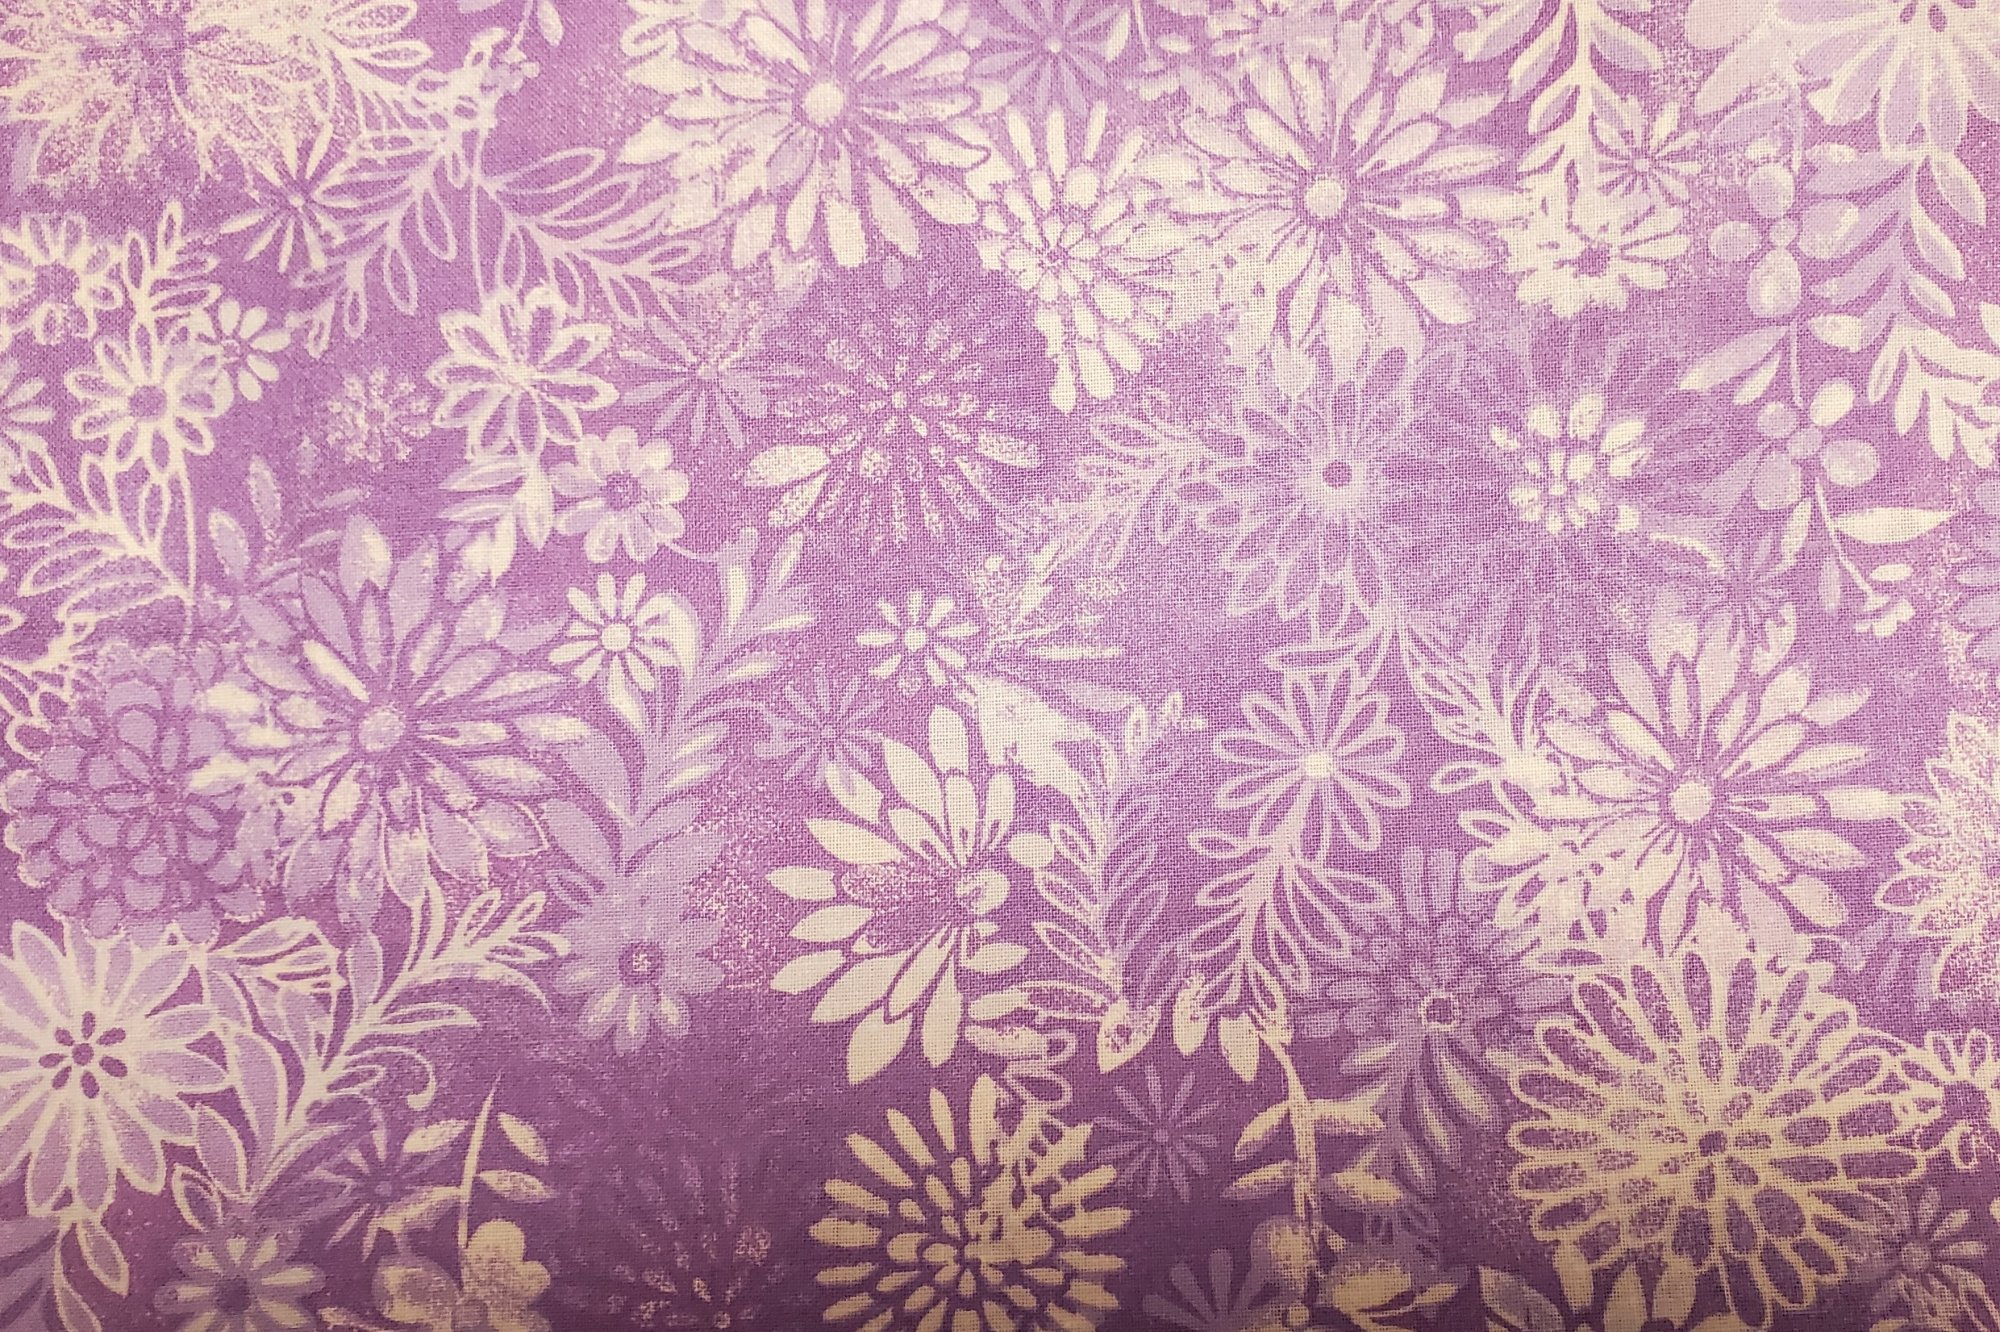 3 Yard Backing Piece: 108 Wide Purple Packed Floral in a single 3 yard piece